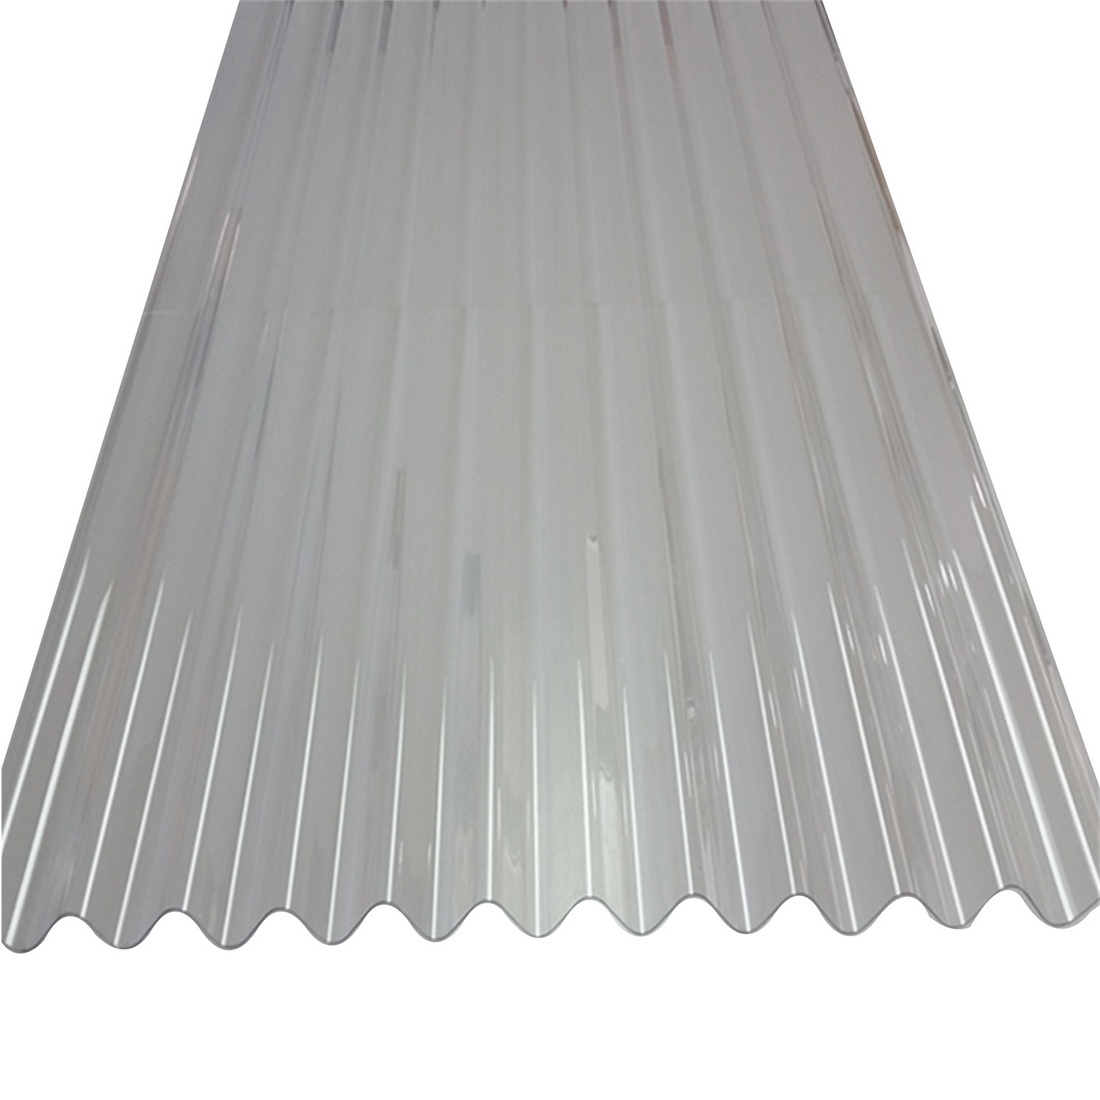 Sunlite Corrugated Roofing 1800 x 660 x 0.8mm PVC Clear SUN-CORR-CLR-1800